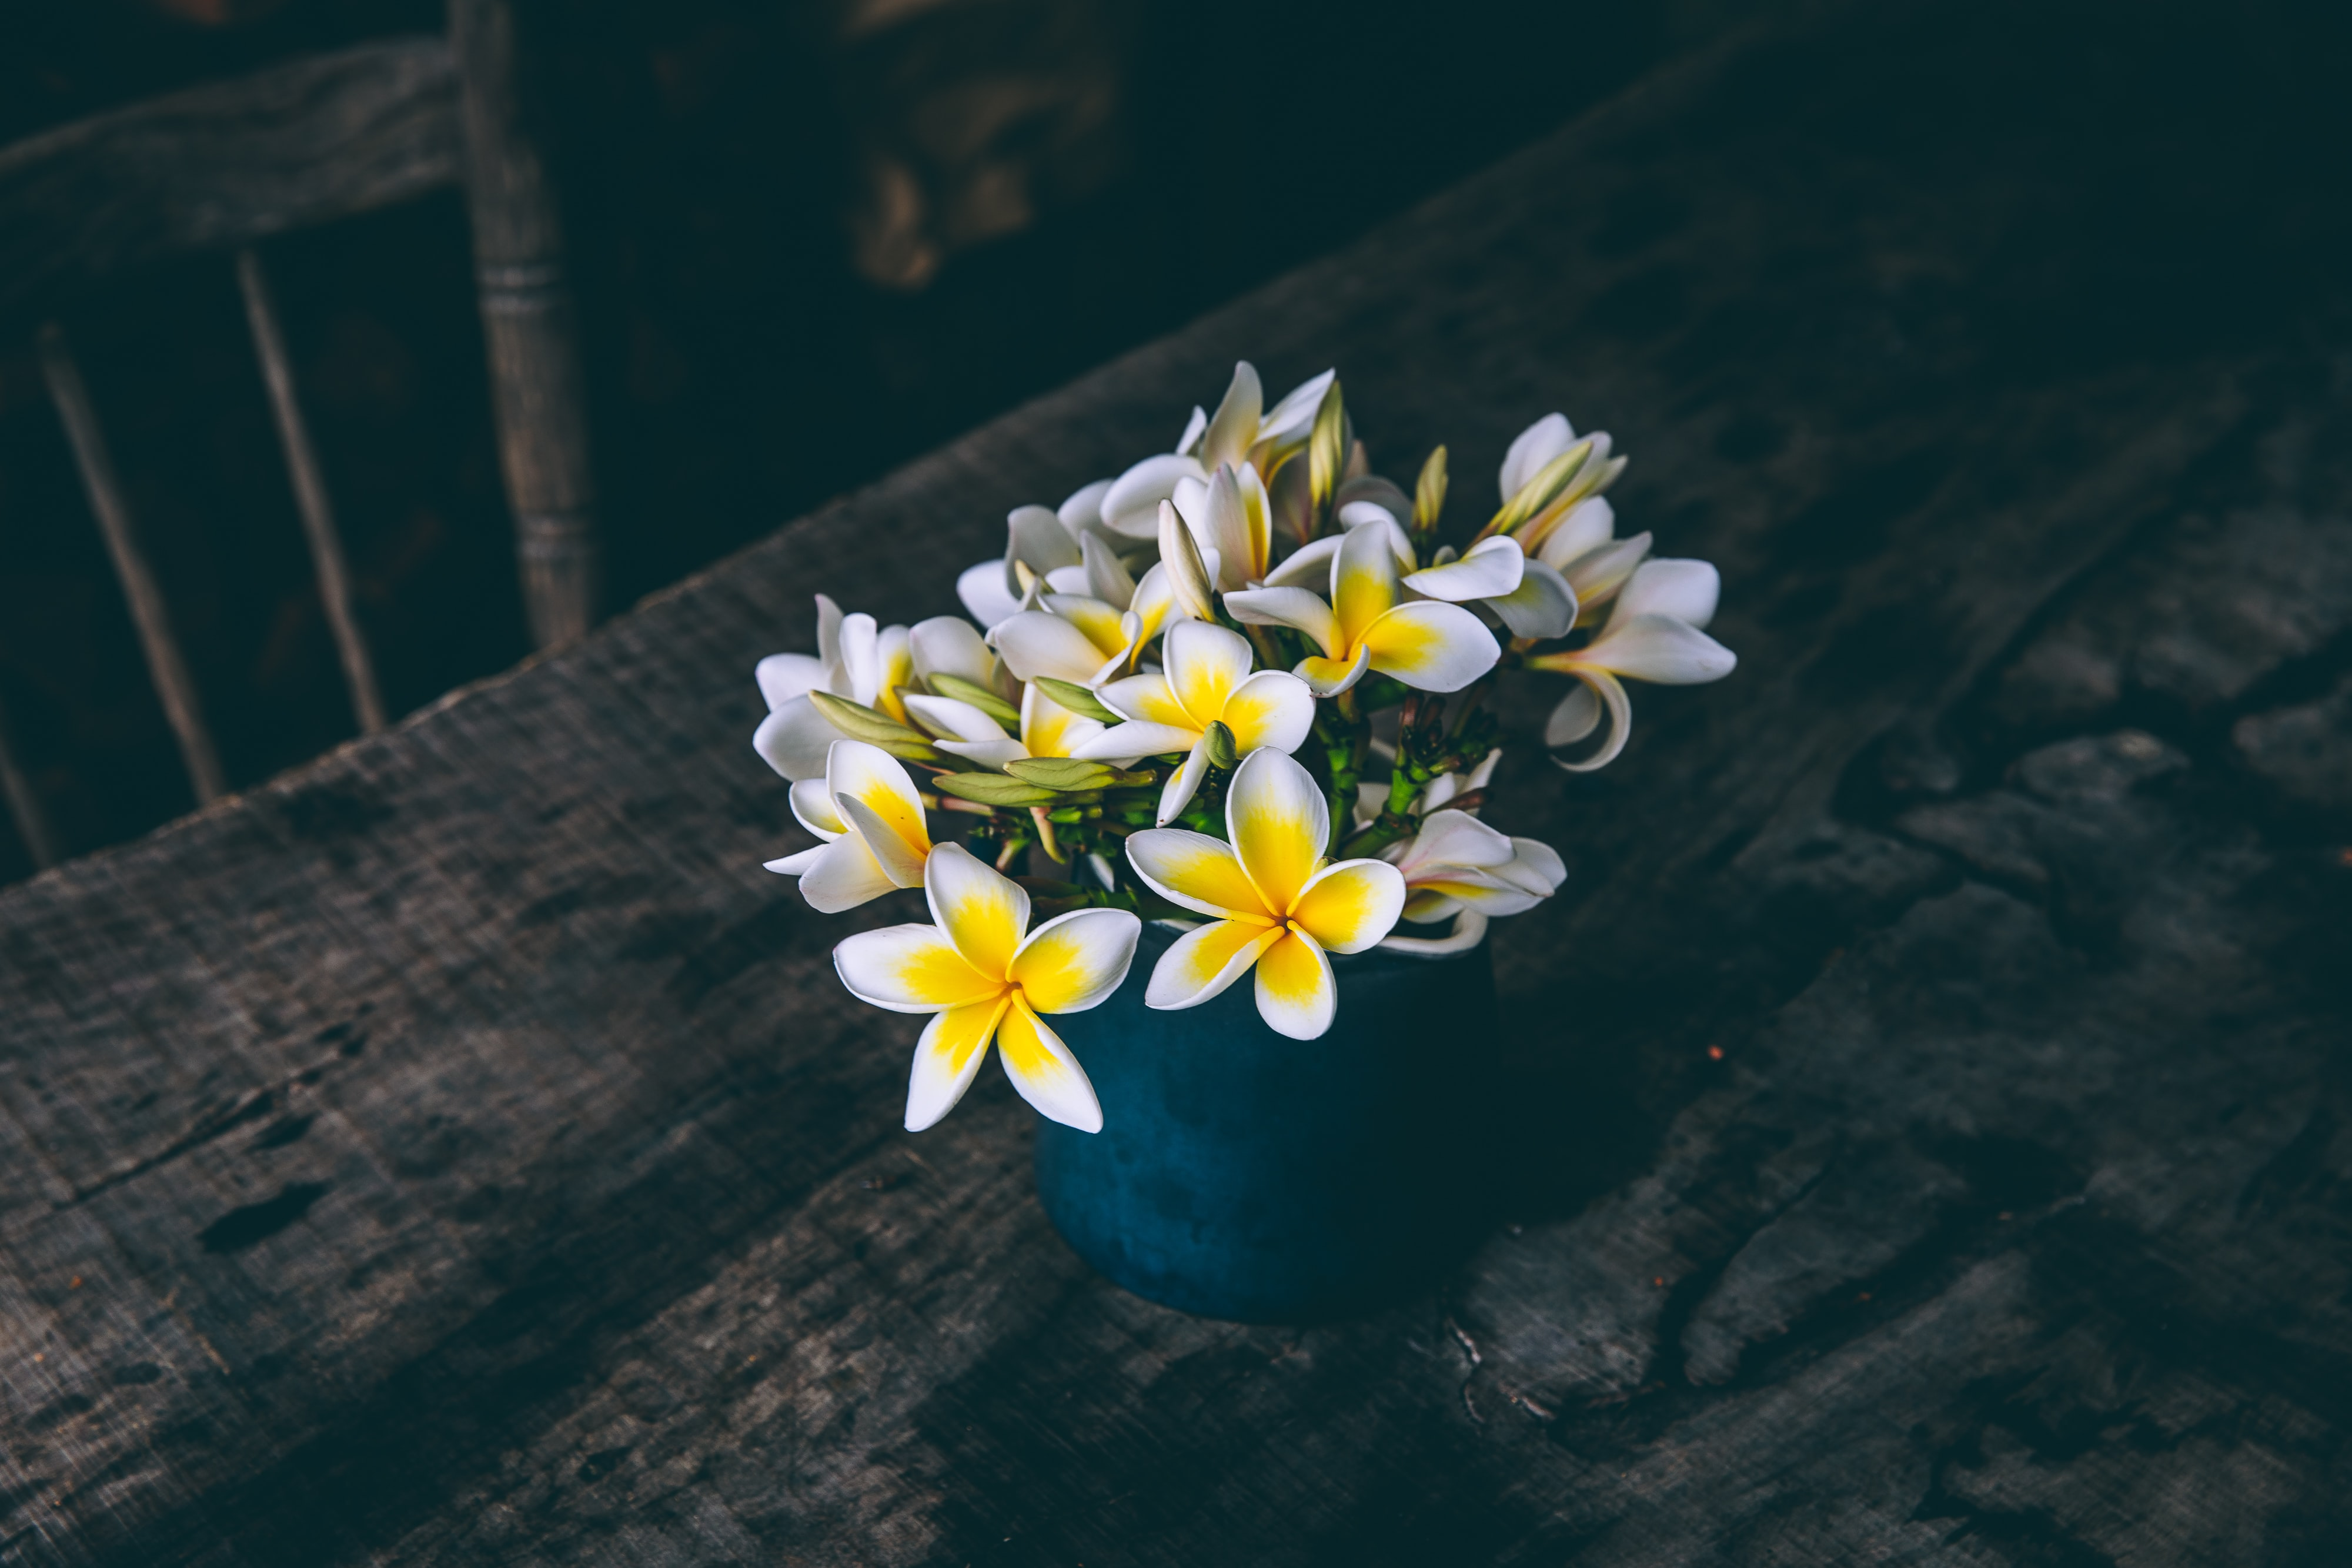 white and yellow petaled flowers in vase